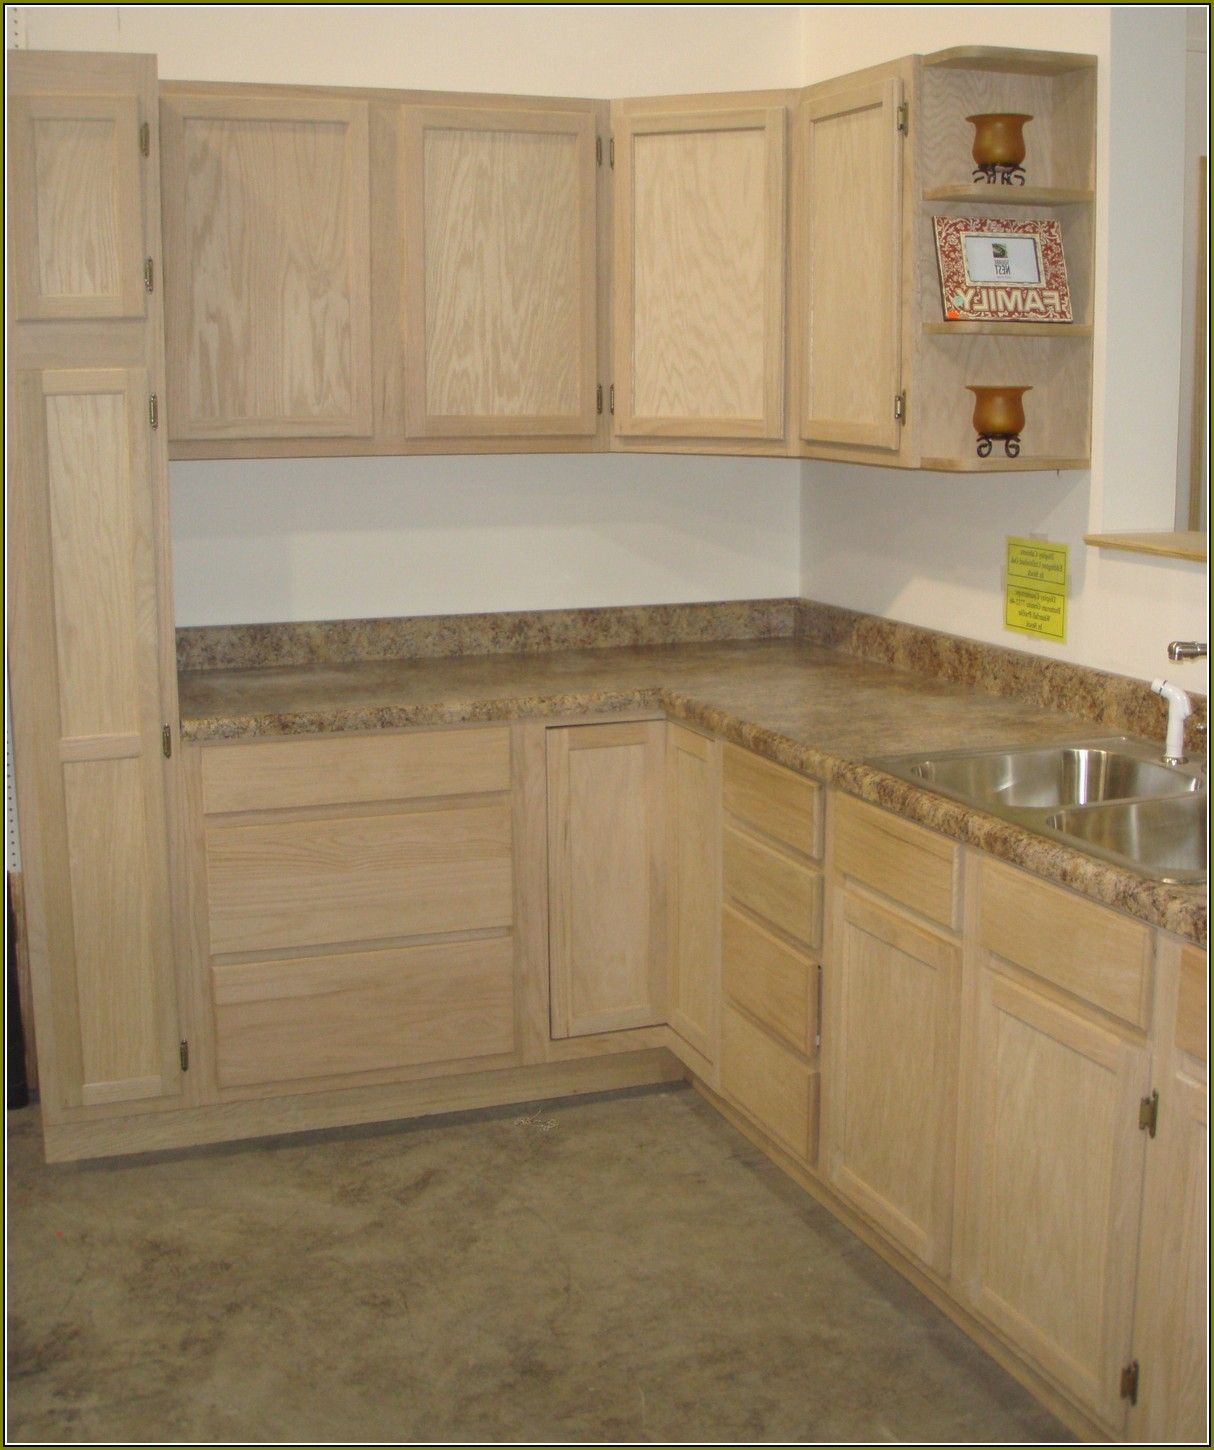 Home Depot Tiles For Kitchen Countertops Gougleri Com Kitchen Cabinets Home Depot Home Depot Kitchen Unfinished Kitchen Cabinets